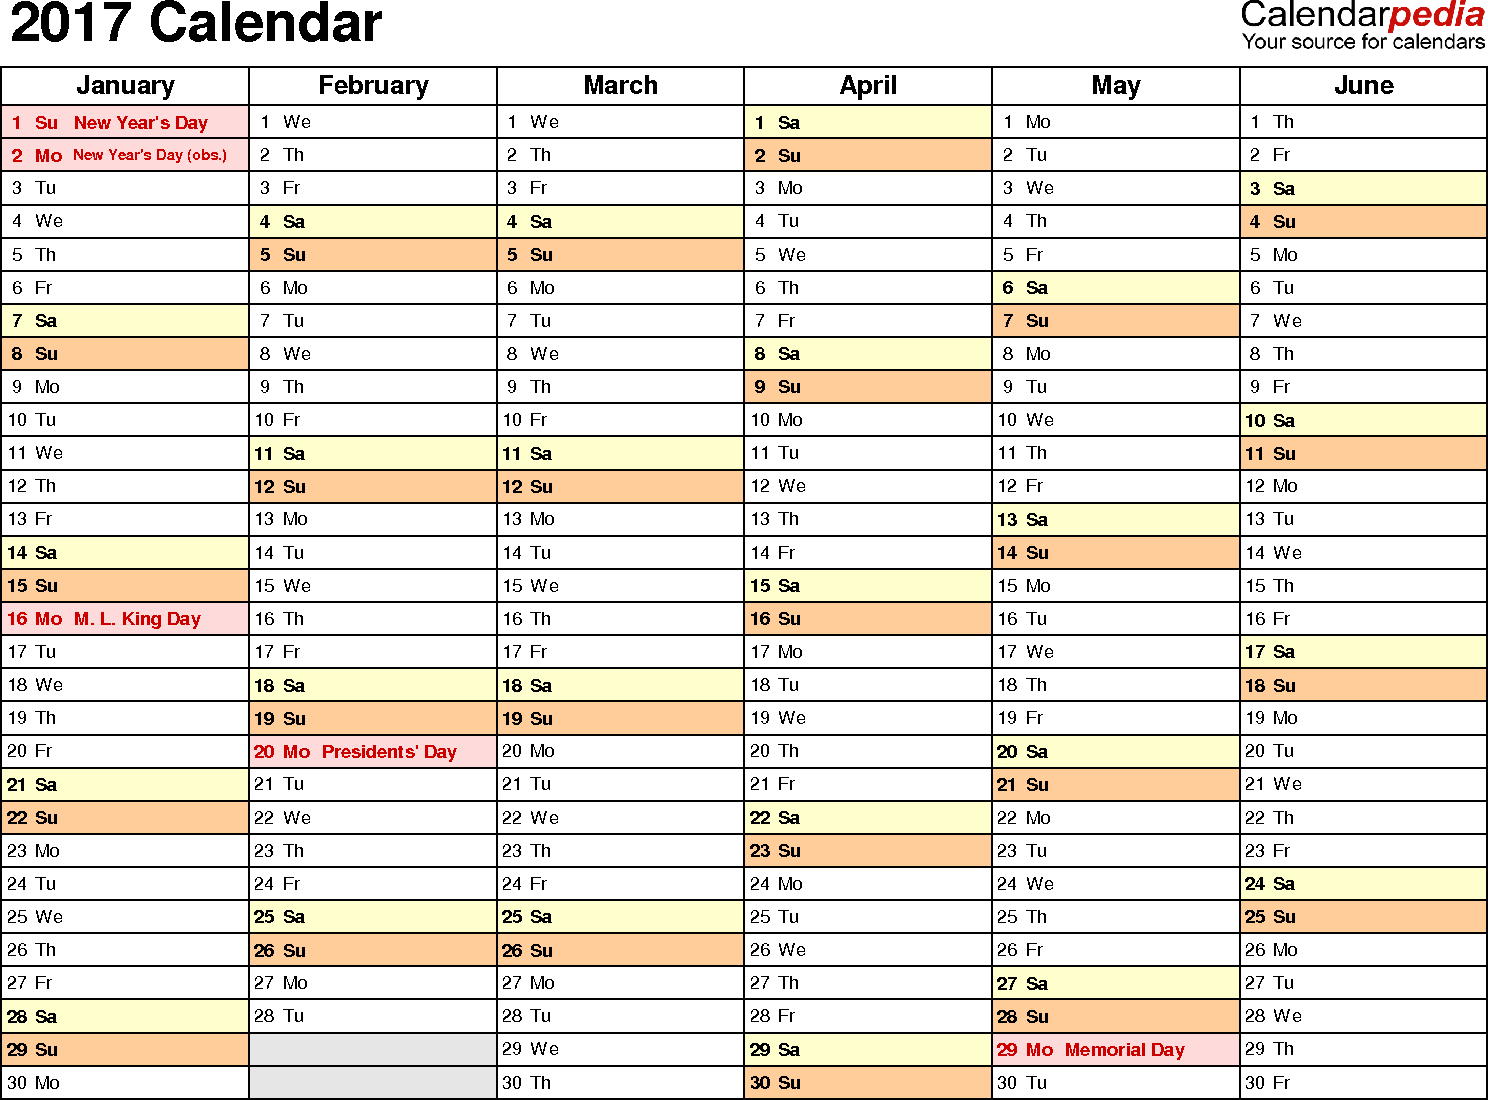 Ediblewildsus  Pleasant  Calendar  Download  Free Printable Excel Templates Xls With Exquisite Template   Calendar For Excel Months Horizontally  Pages Landscape Orientation With Divine How To Name Columns In Excel Also Excel Create A Drop Down List In Addition Work Plan Template Excel And Excel Reorder Columns As Well As Data Analysis Add In Excel Additionally How To Put Checkbox In Excel From Calendarpediacom With Ediblewildsus  Exquisite  Calendar  Download  Free Printable Excel Templates Xls With Divine Template   Calendar For Excel Months Horizontally  Pages Landscape Orientation And Pleasant How To Name Columns In Excel Also Excel Create A Drop Down List In Addition Work Plan Template Excel From Calendarpediacom